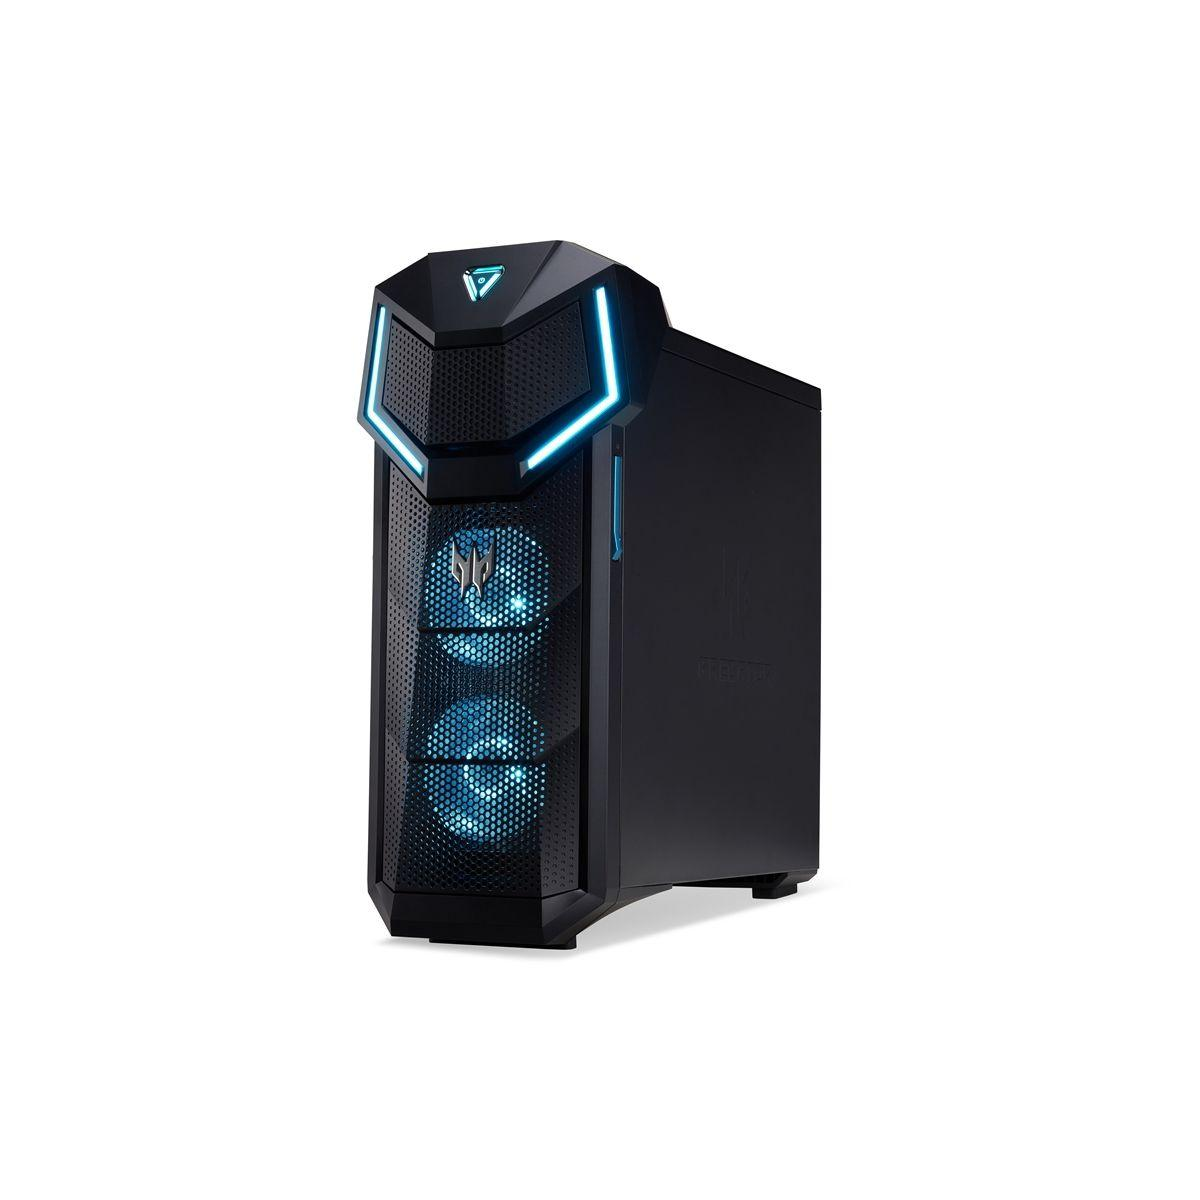 Pc gamer acer predator po5-610-005